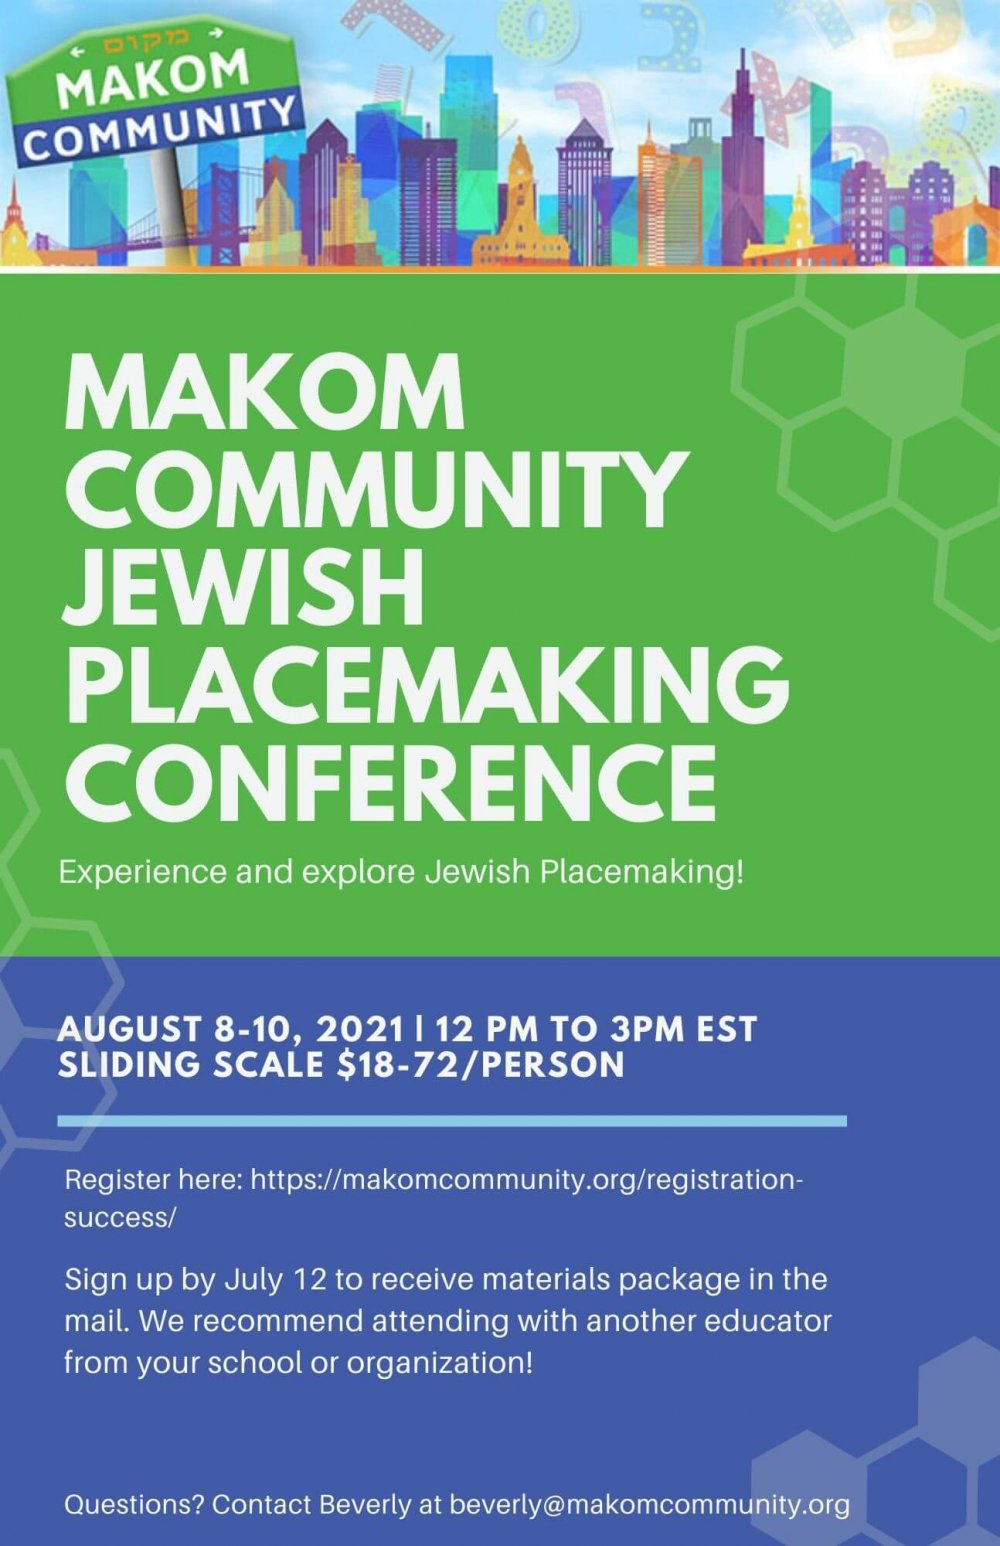 Makom Community Jewish Placemaking Conference Schedule Overview